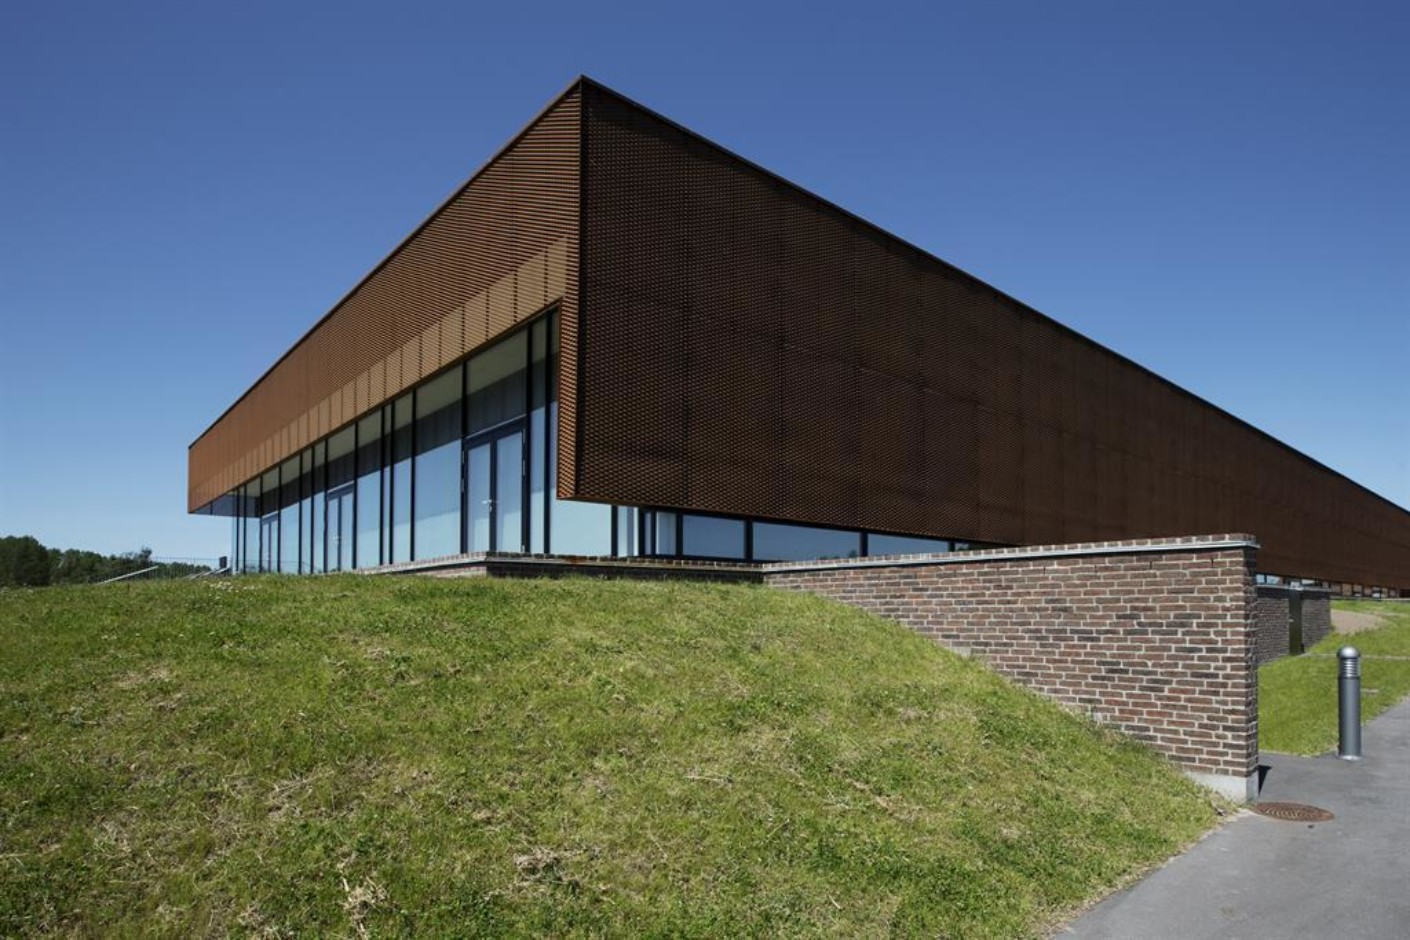 Perforated Sun Screens In Corten Sports Hall In Ringsted